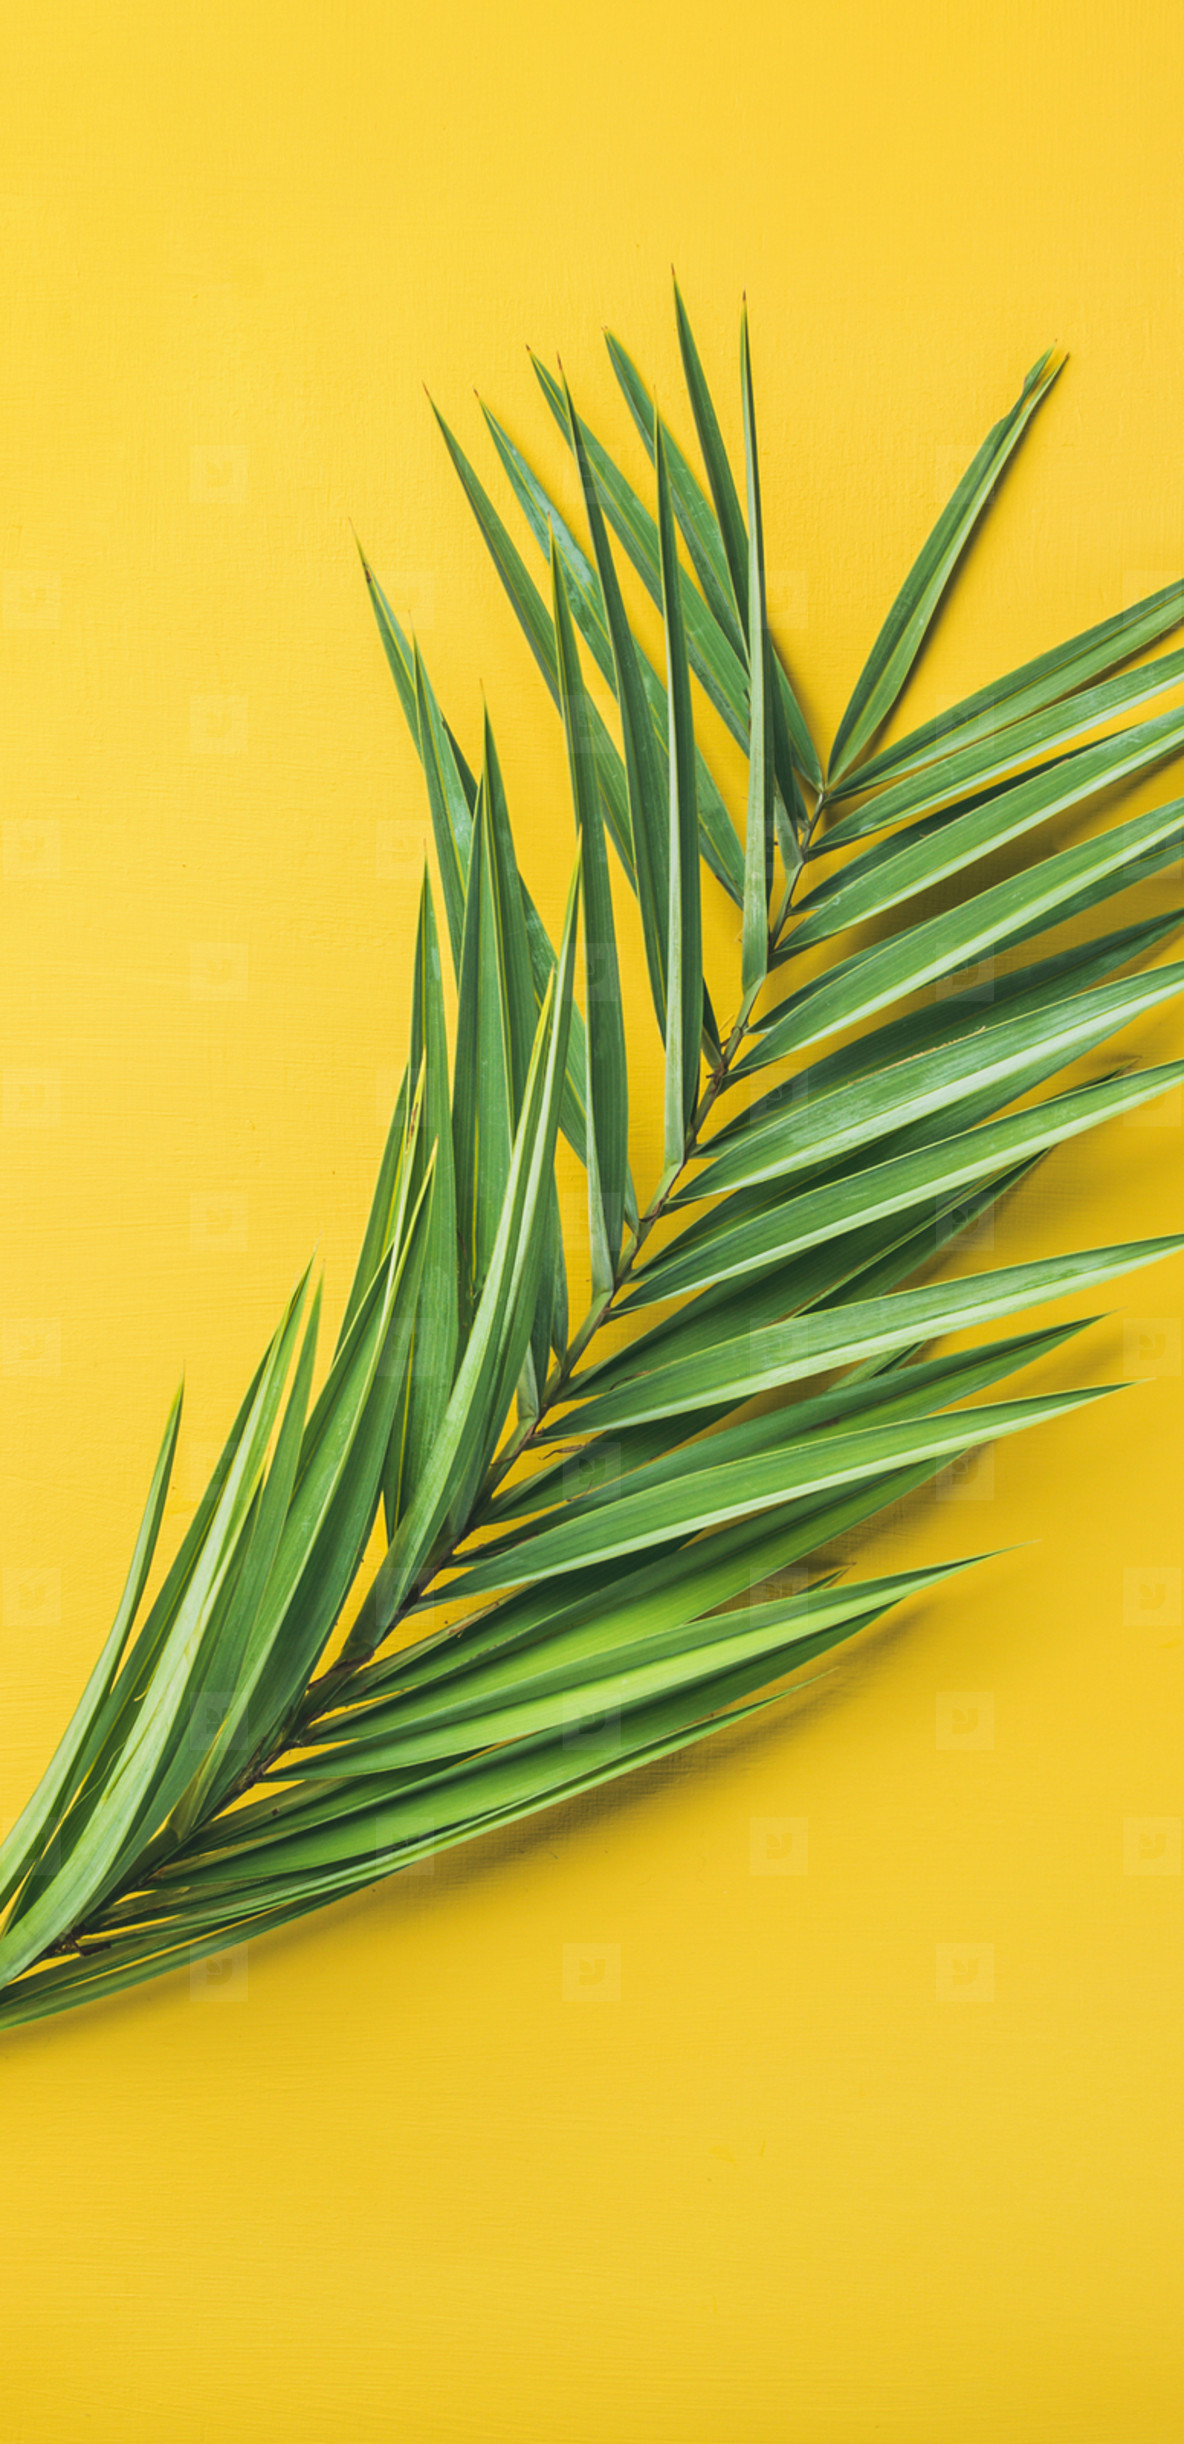 Green palm branches over yellow background  top view  narrow composition